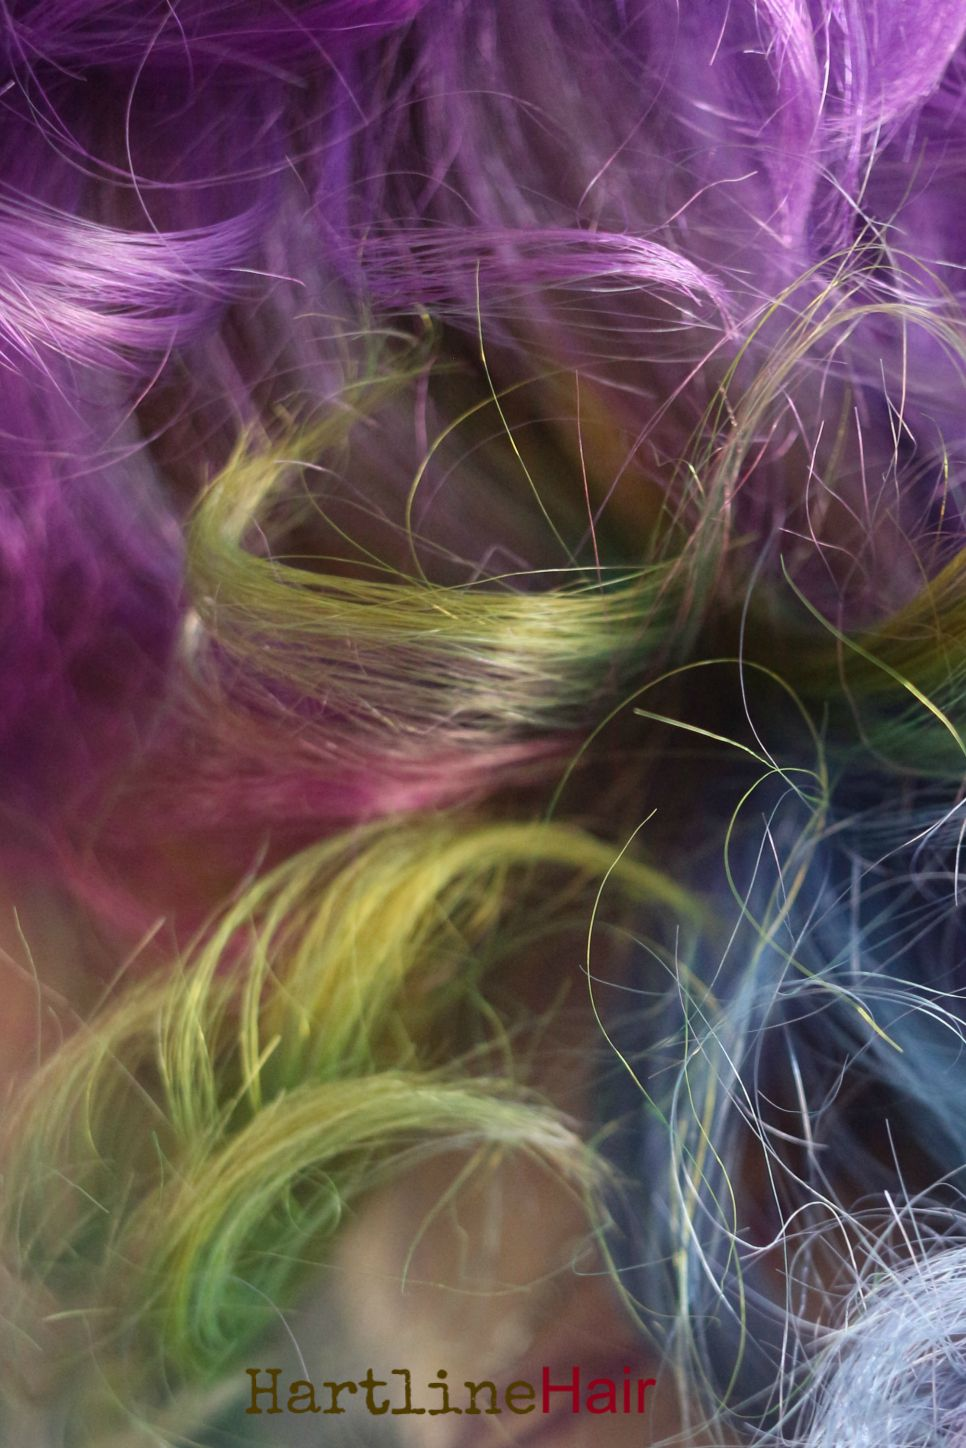 Love purple hair next to yellow hair!  Not easy to create but always beautiful to me... makes me think of spring.